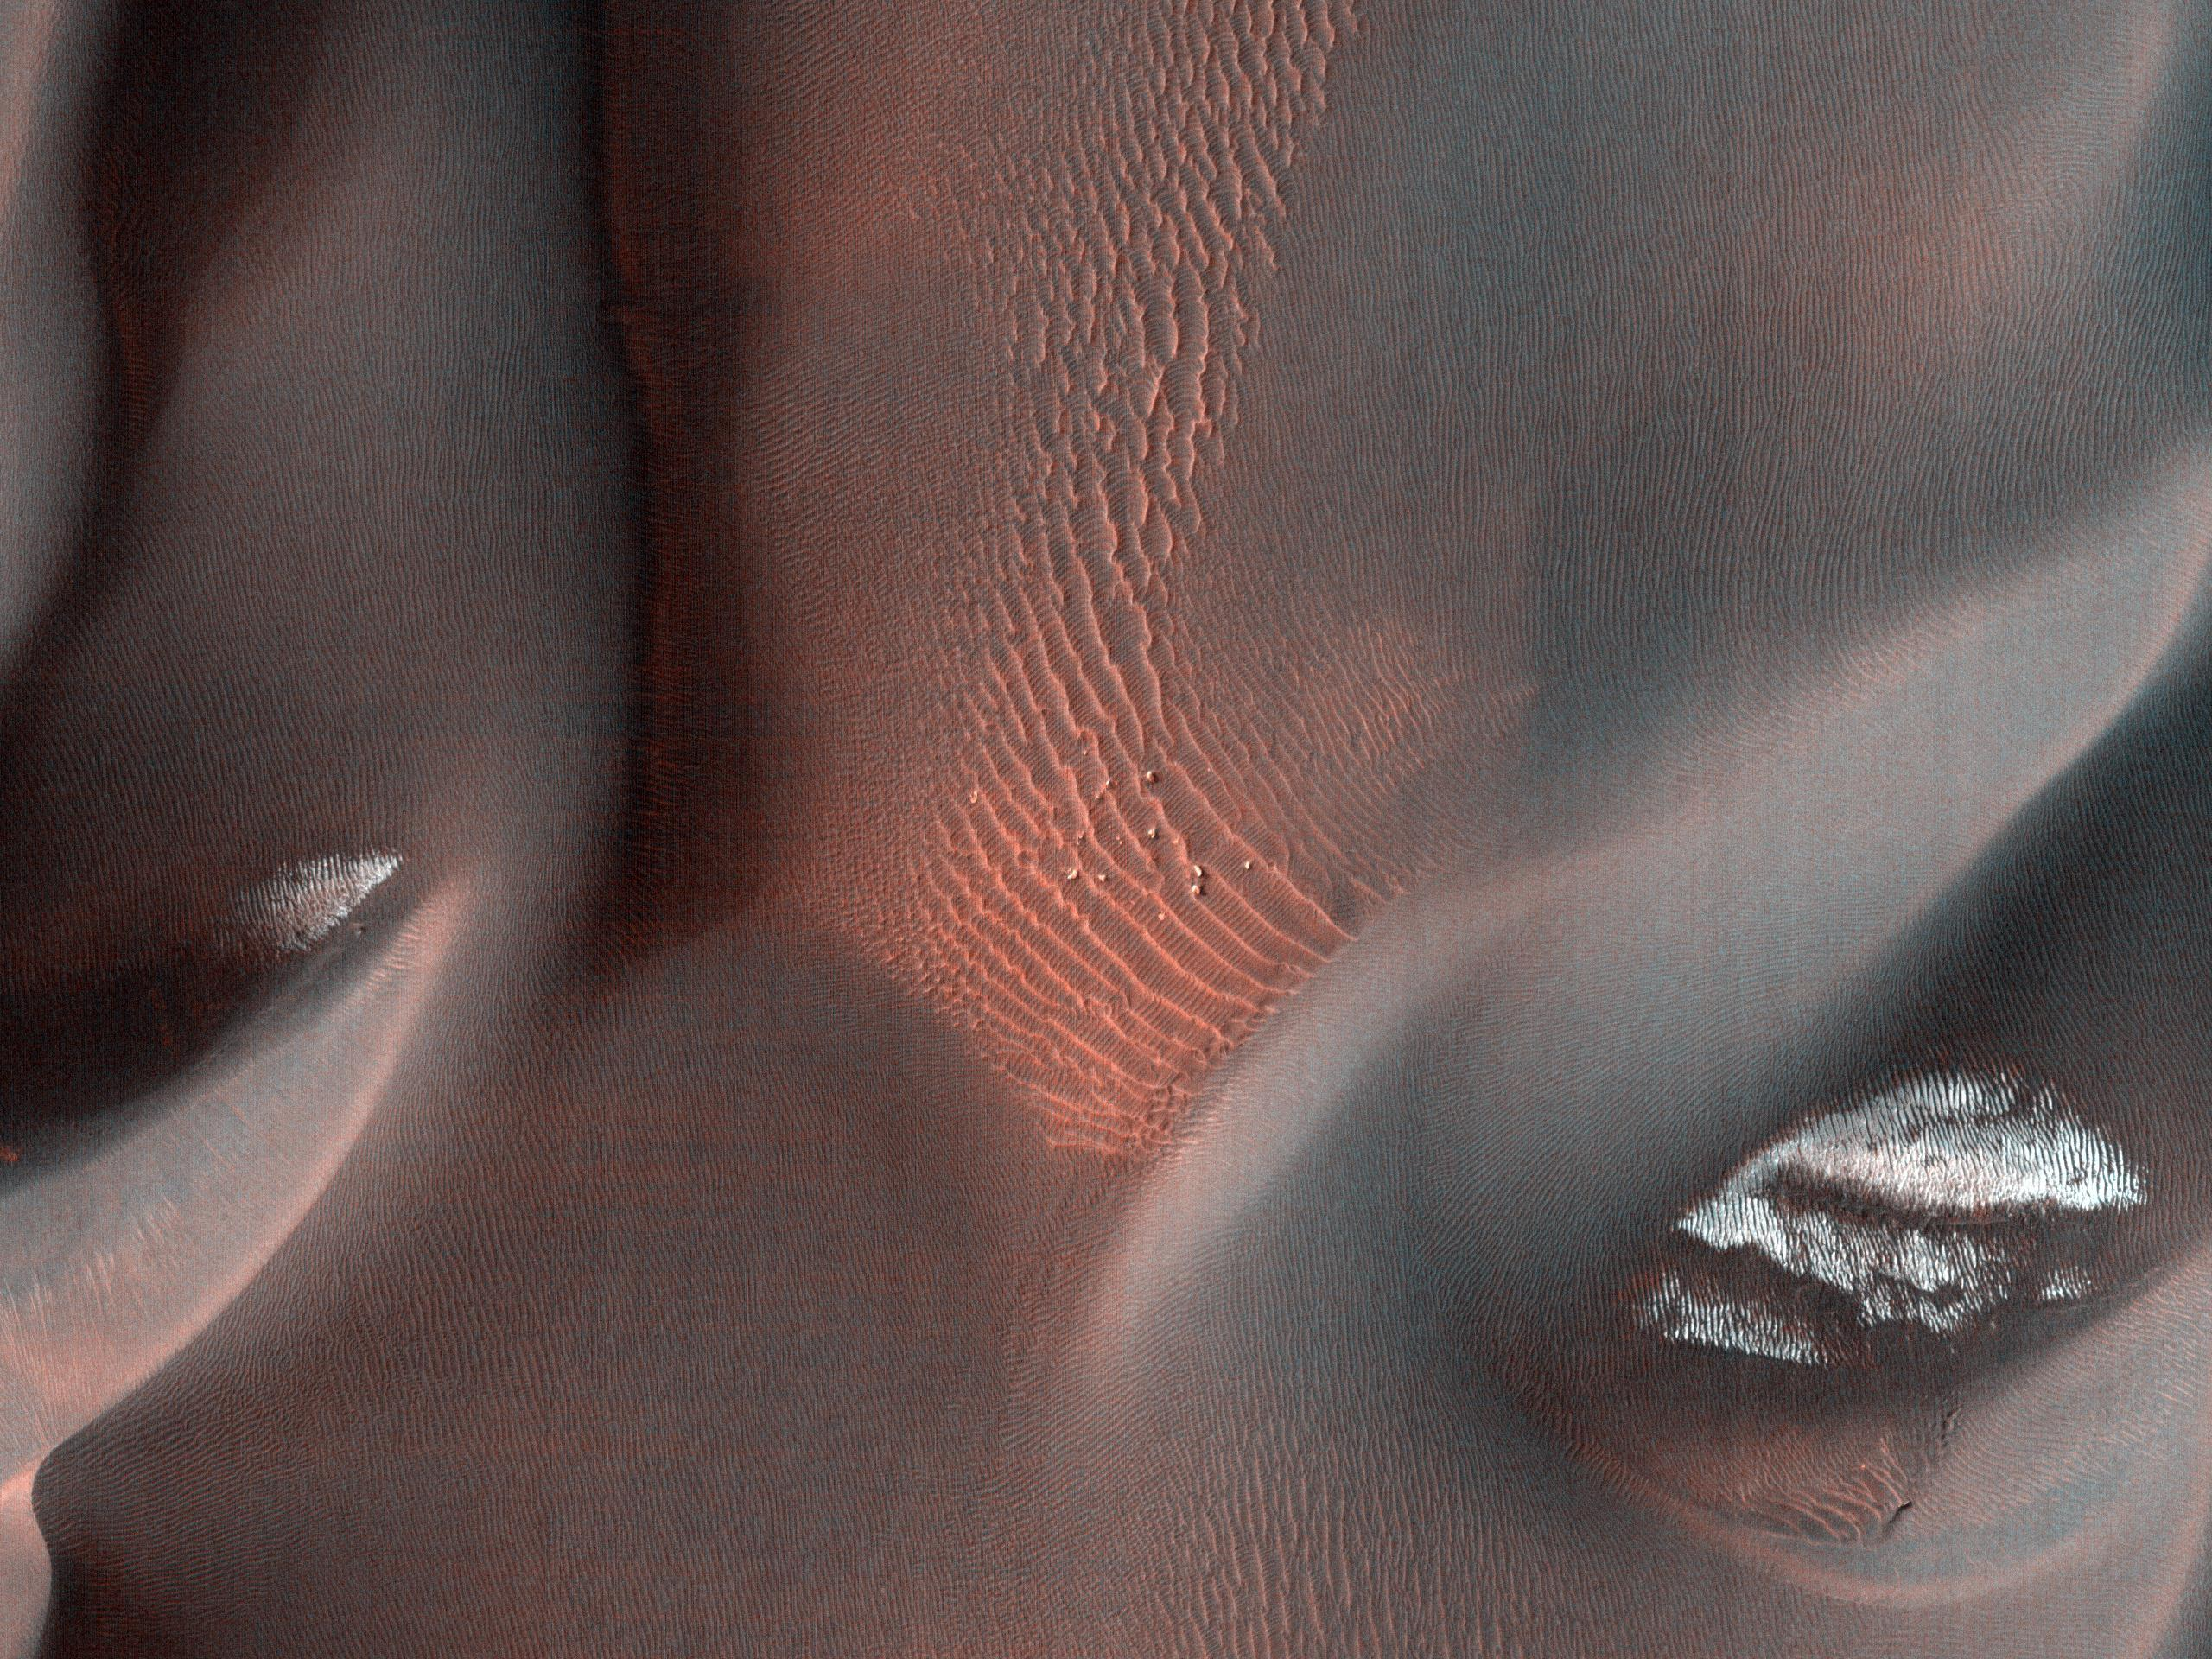 This image captured by NASA's Mars Reconnaissance Orbiter shows the edge of a dark dune field on the floor of Proctor Crater, a 150 kilometer diameter crater in the southern highlands of Mars.